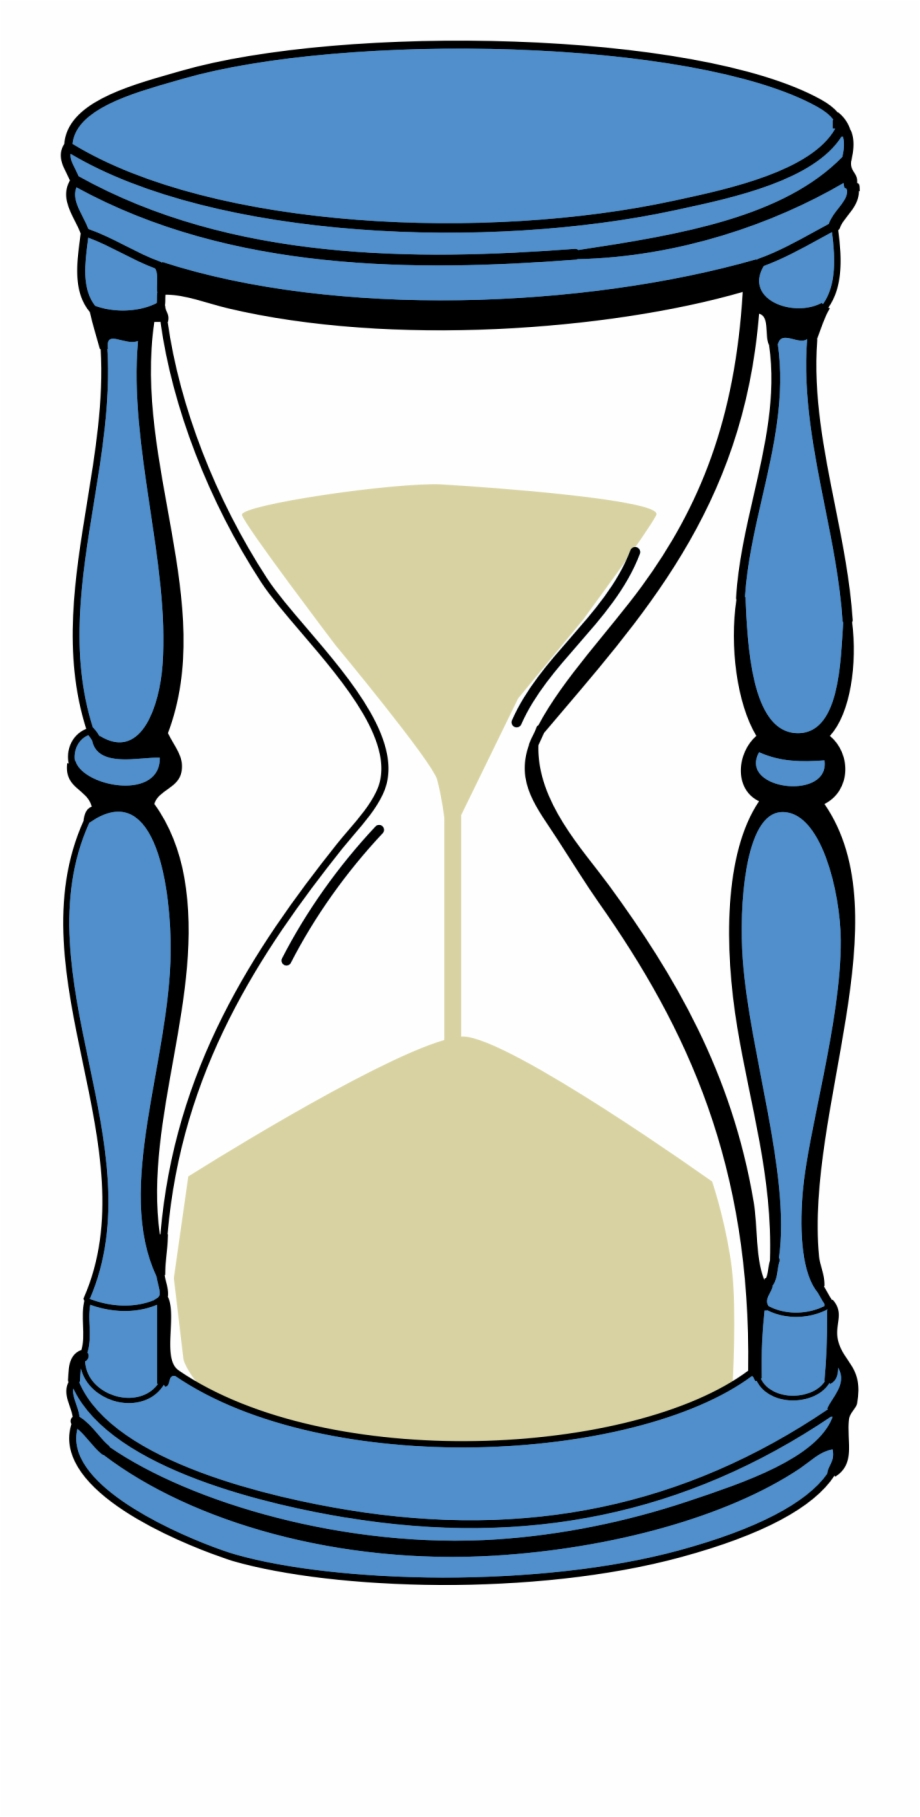 Hourglass Clipart Time Capsule.